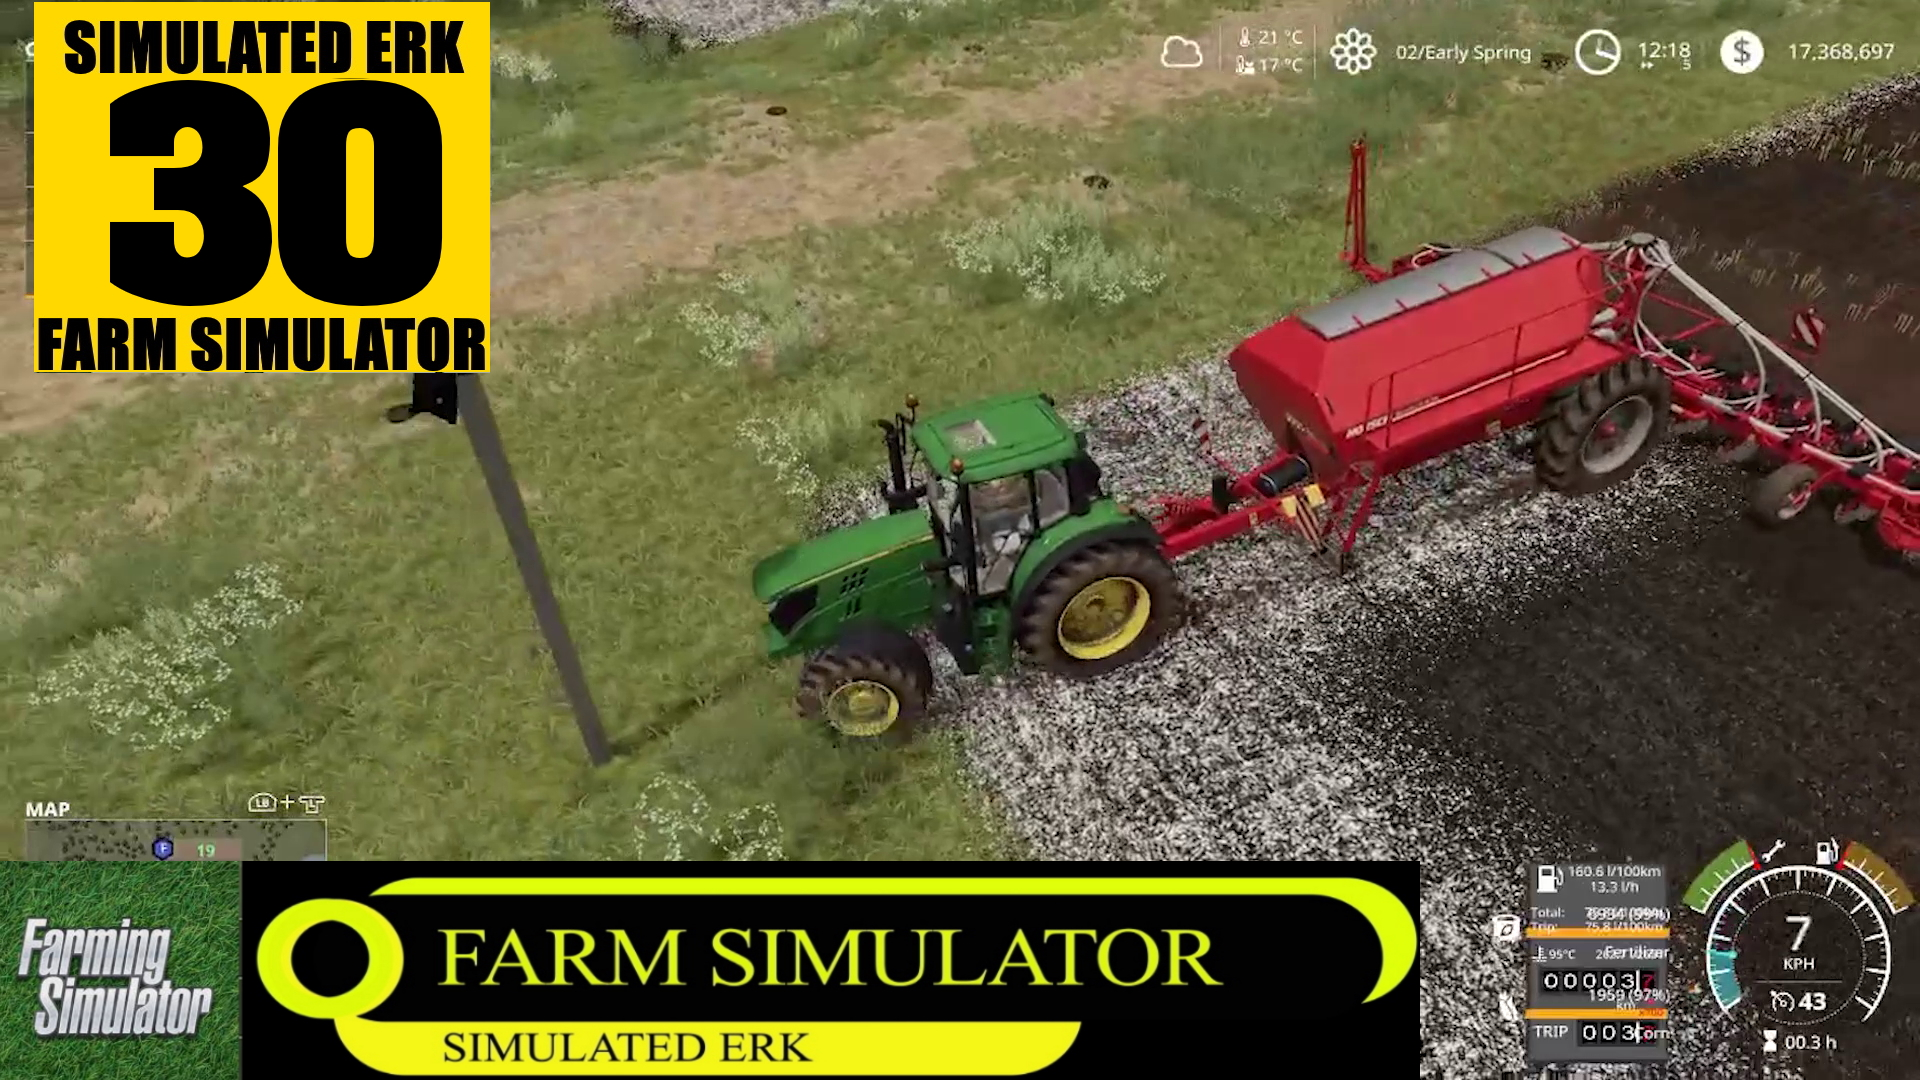 Simulated Erk: Farm Simulator episode 30 – Getting Ready To Harvest